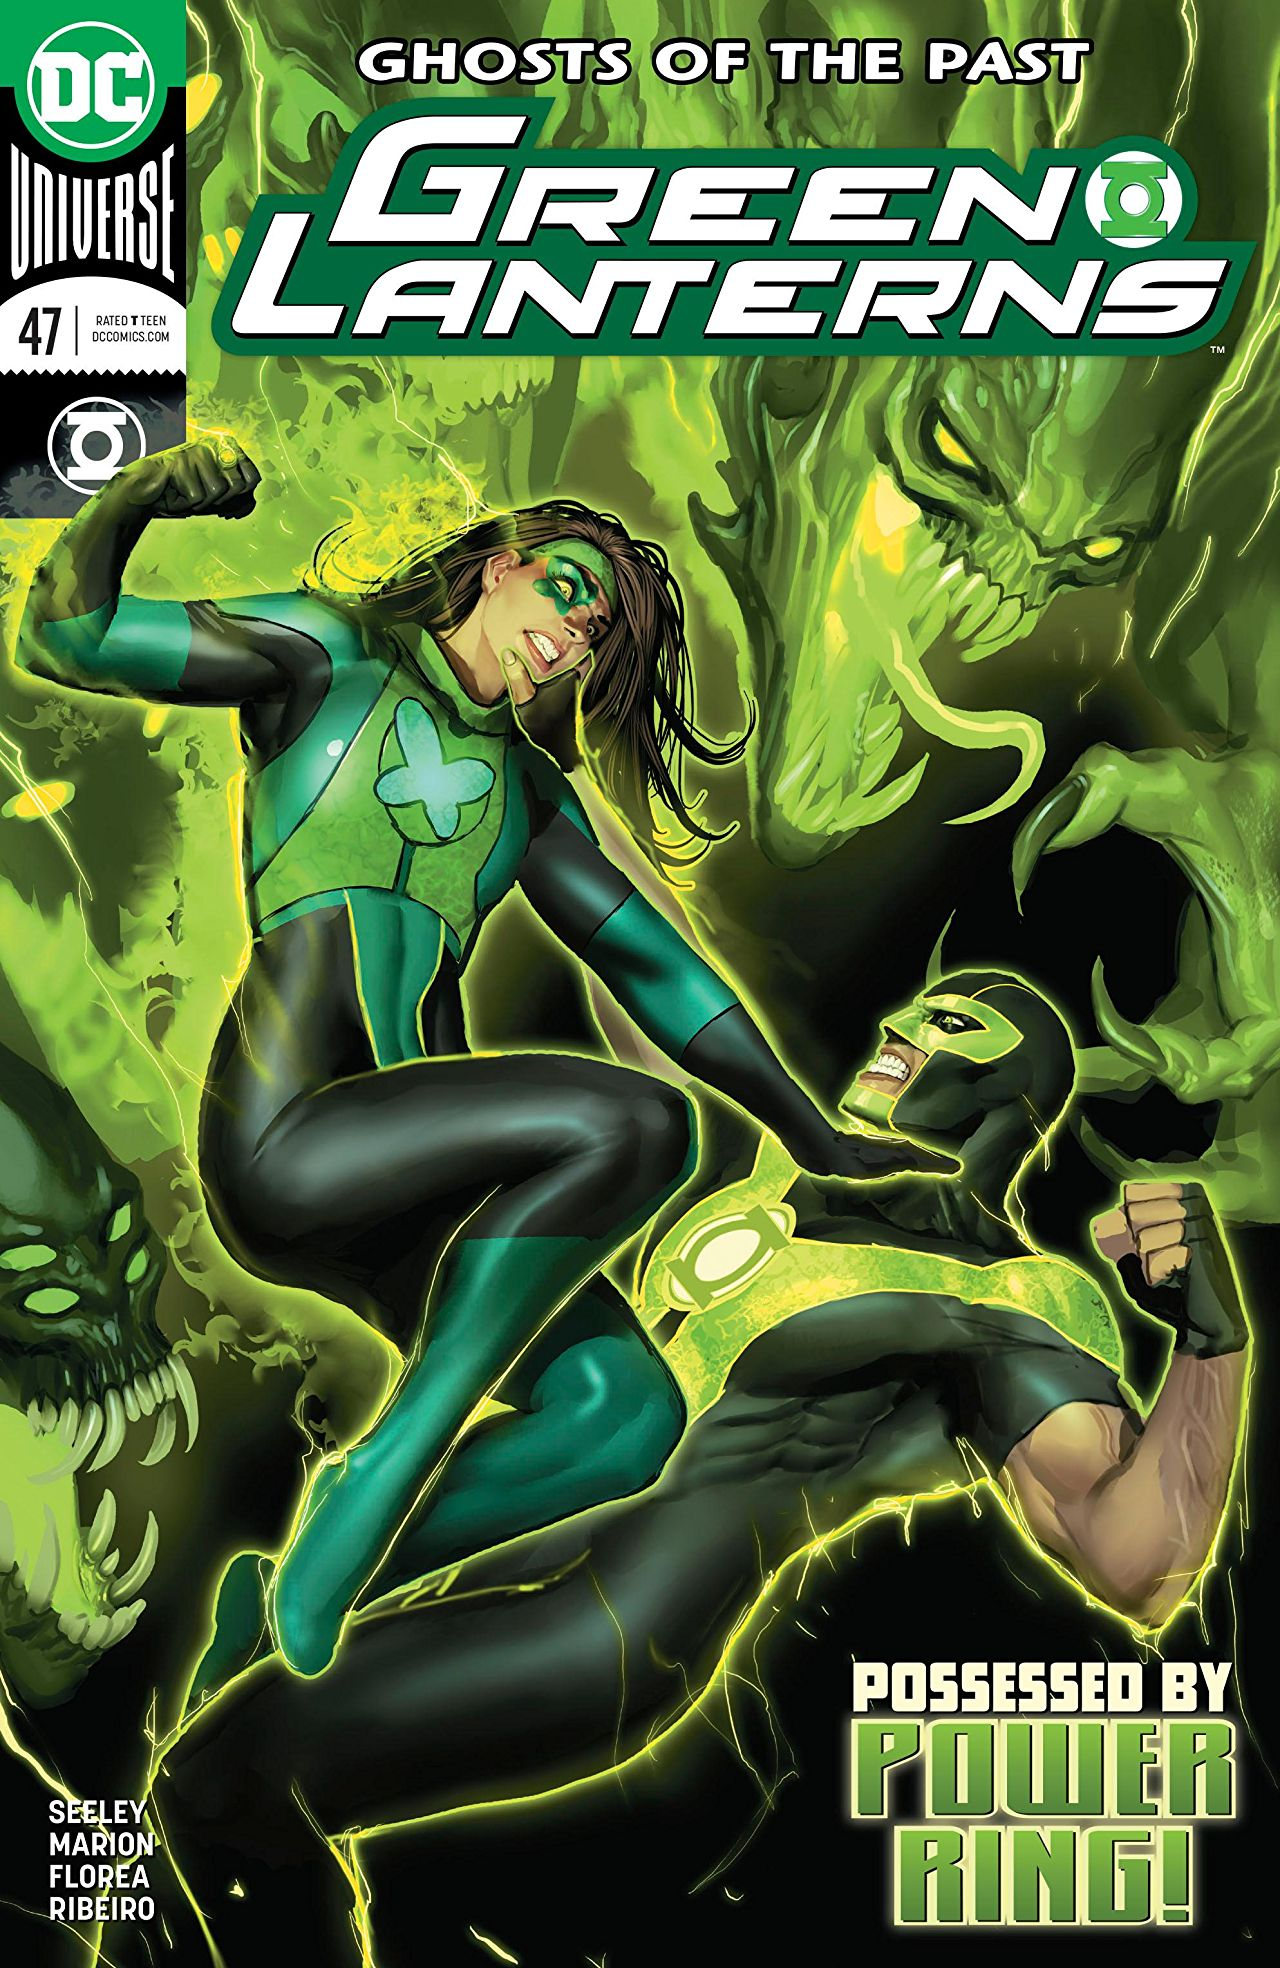 Green Lanterns #47 review: A satisfying conclusion to a terrific arc with a powerful message